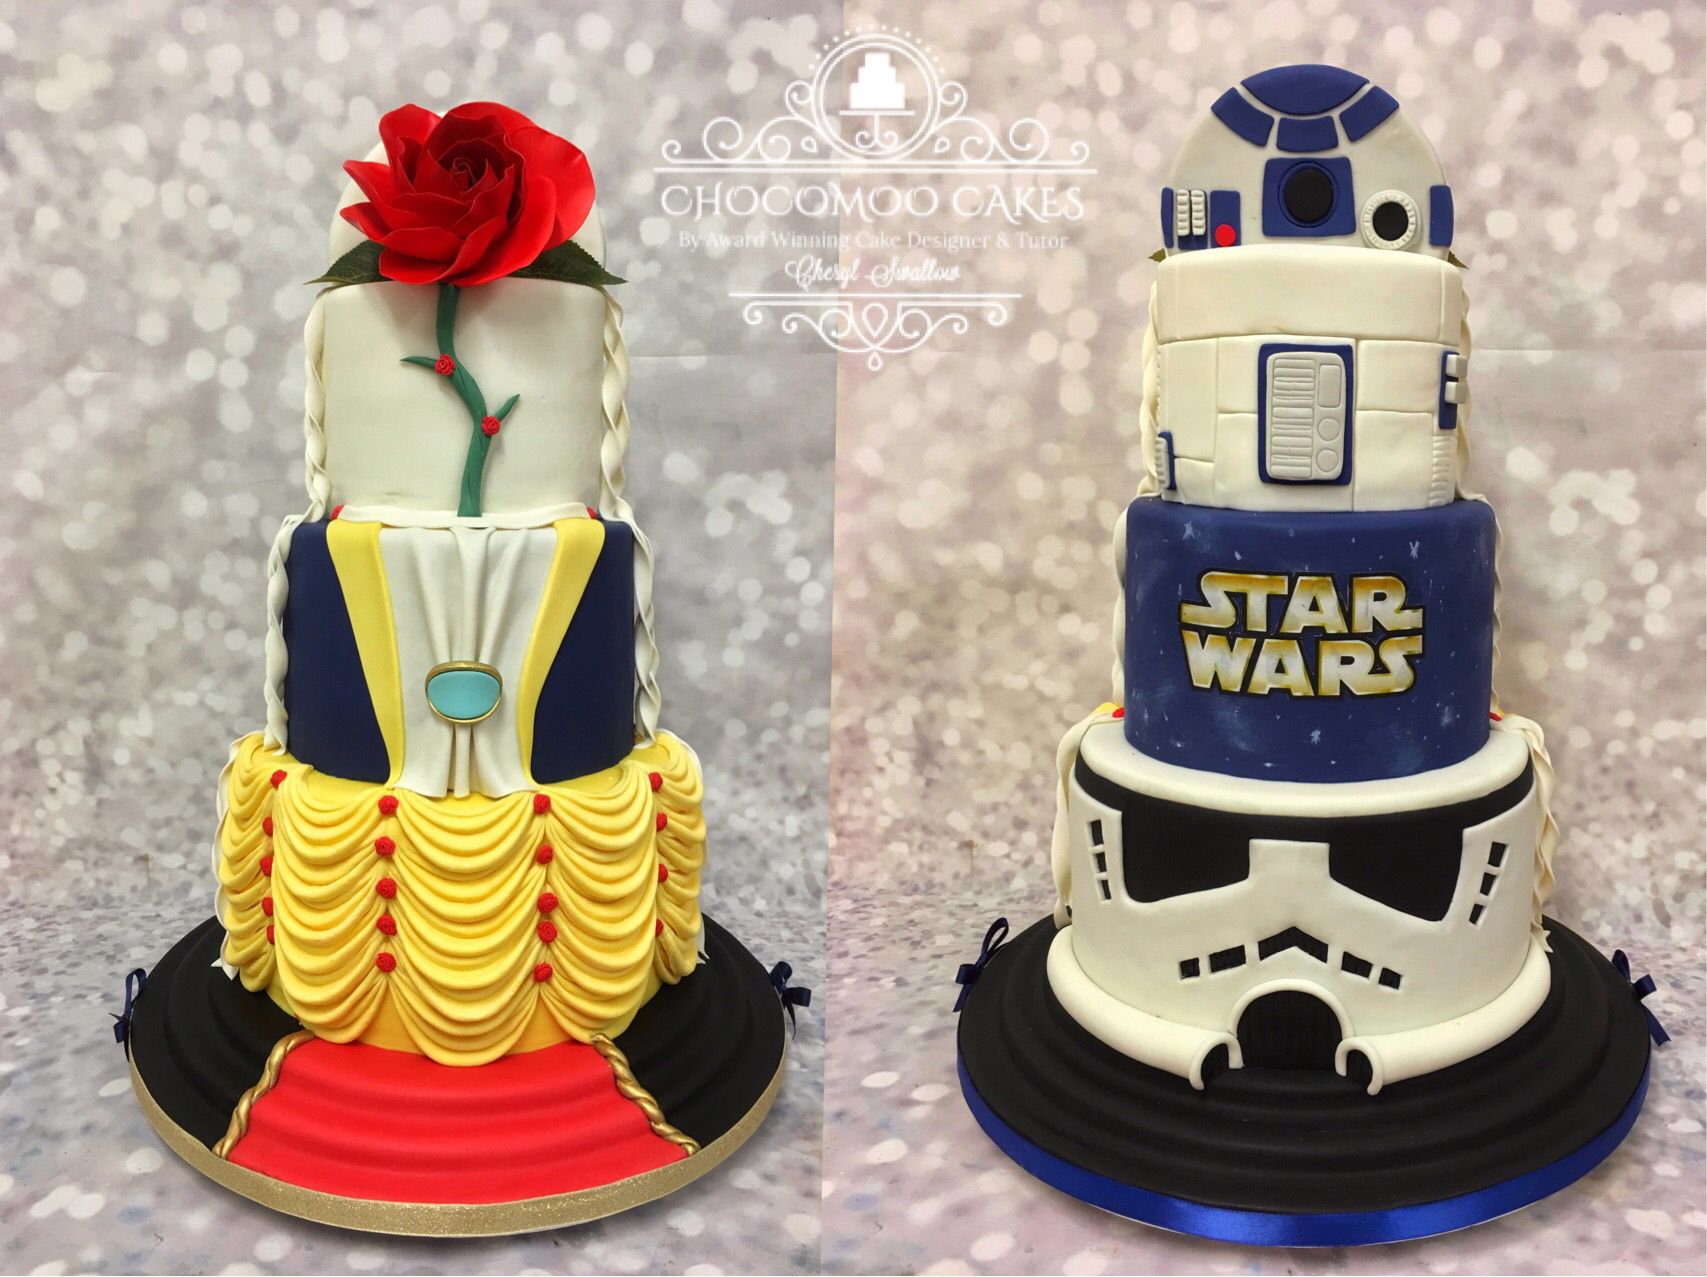 Half Star Wars Half Beauty And The Beast Wedding Cake Beauty And The Beast Wedding Cake Star Wars Wedding Cake Creative Desserts